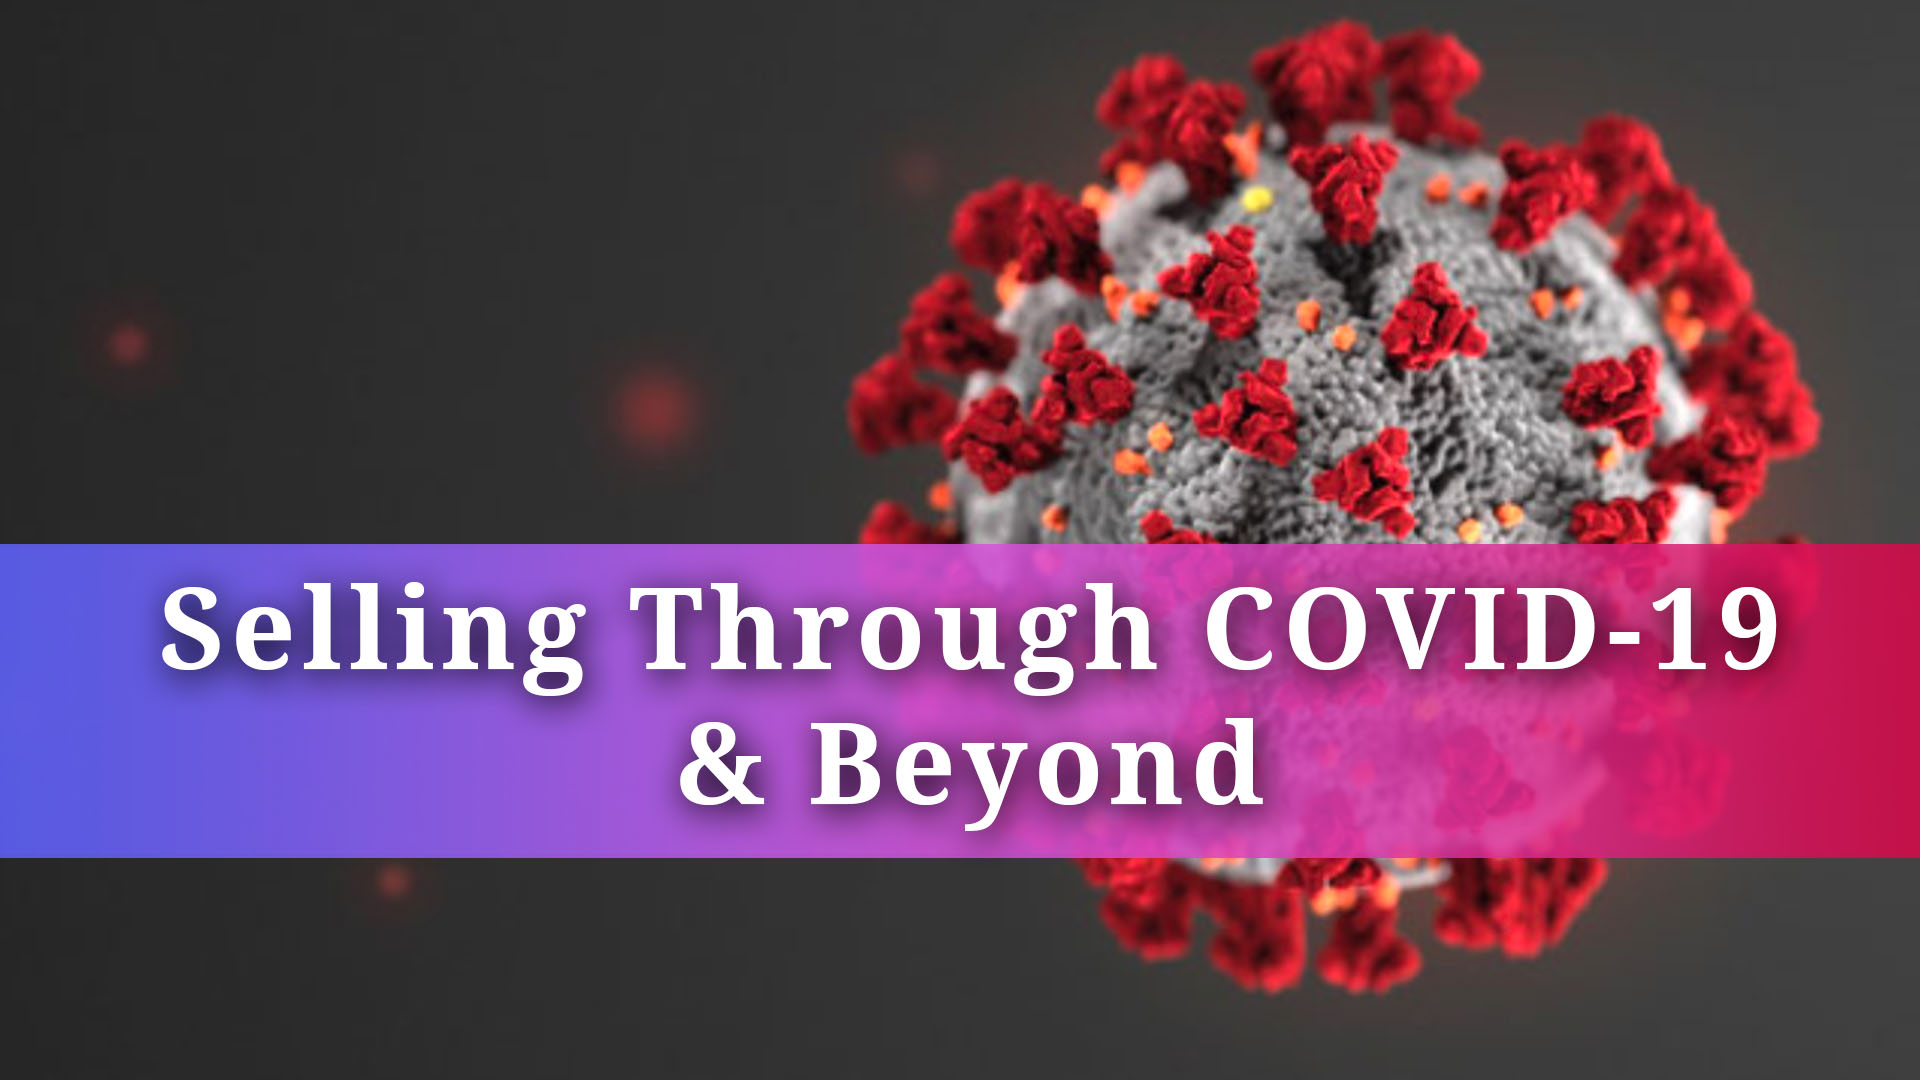 Selling Through COVID-19 and Beyond: The 4 Cs